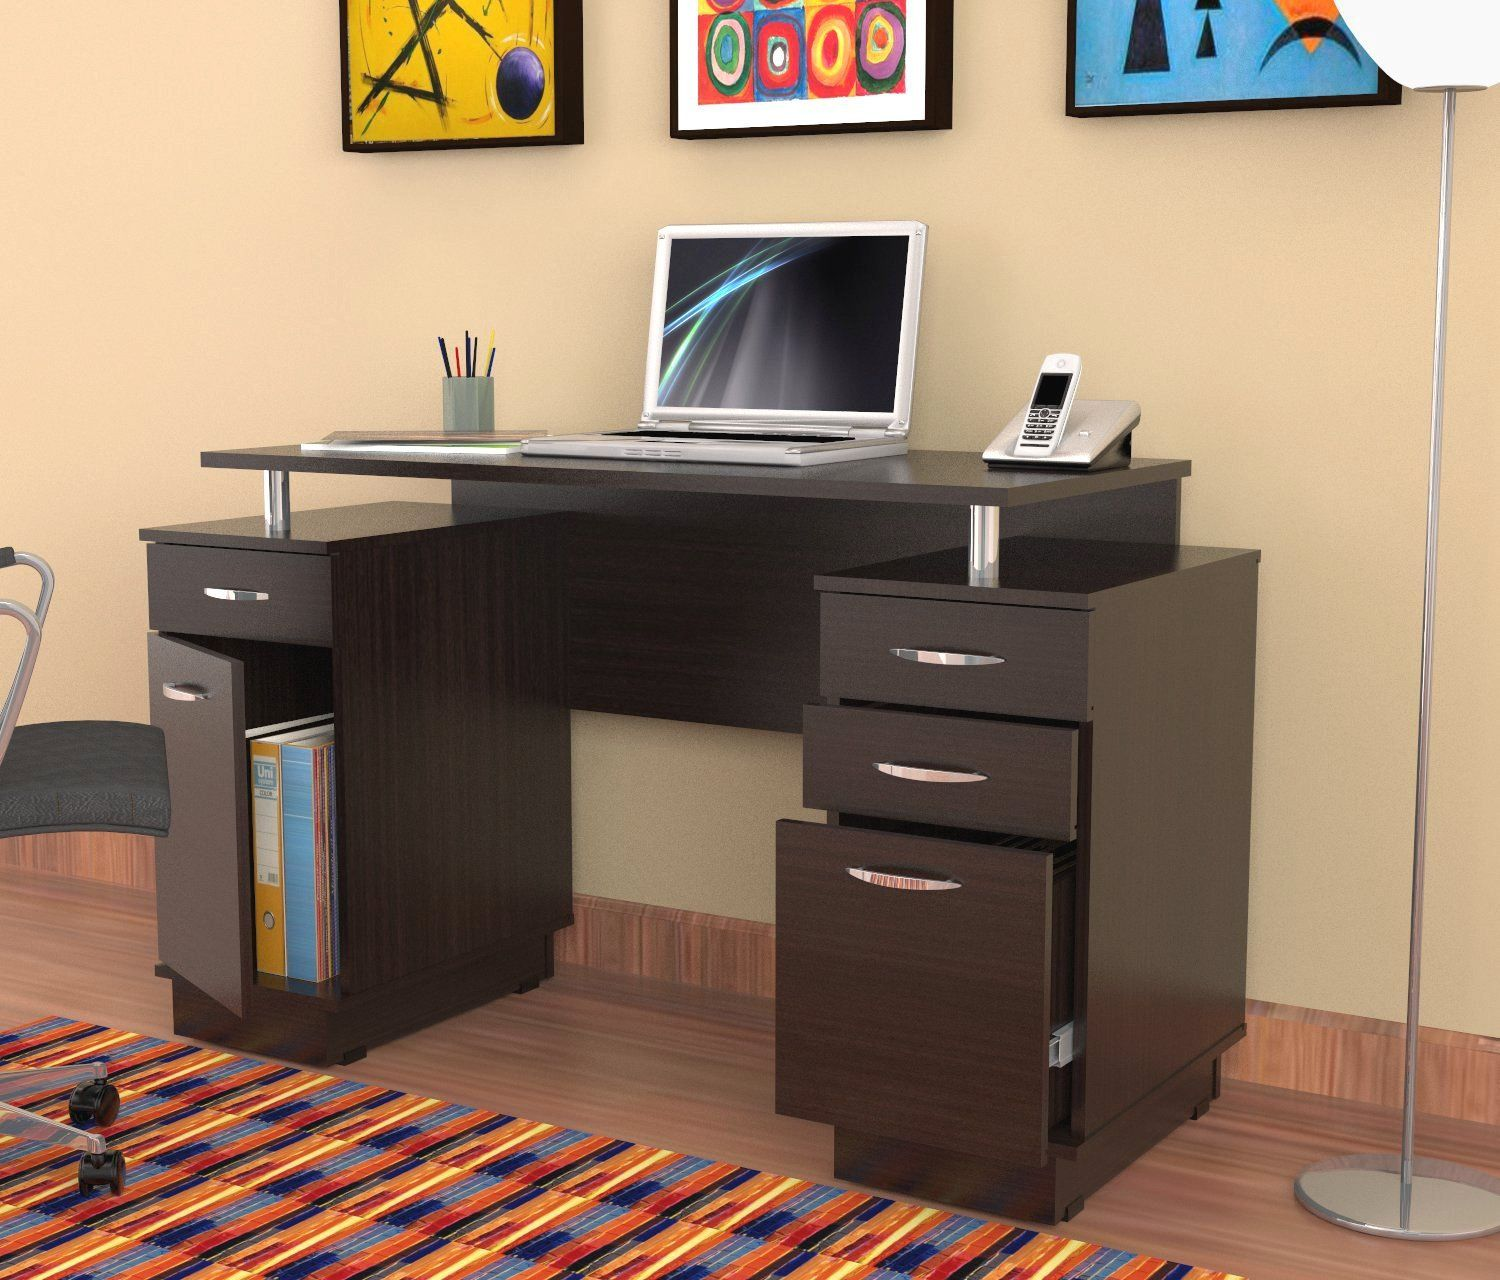 Lockable Office Desk Home Furniture Collections Check More At Http Www Drjamesghoodblog